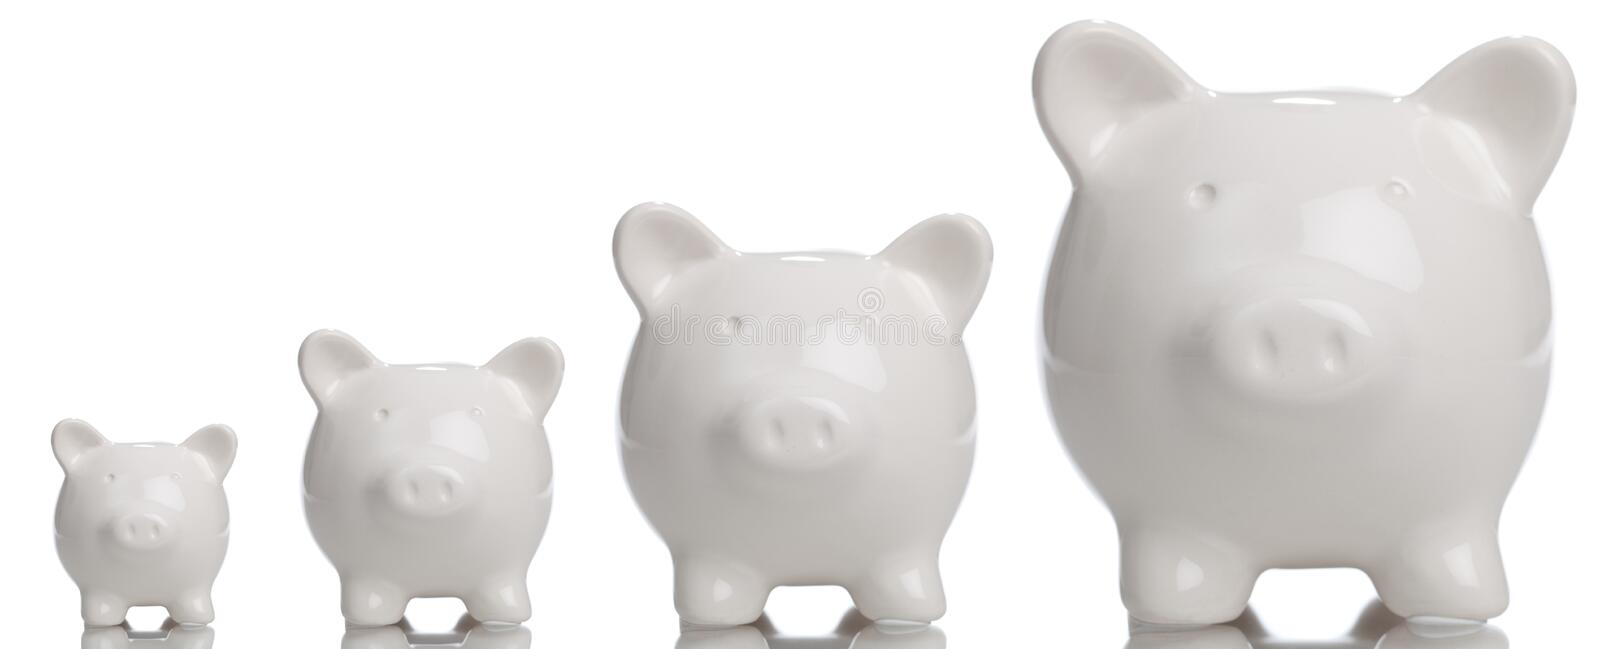 Download Growing Piggy Bank stock photo. Image of finance, investing - 15358050